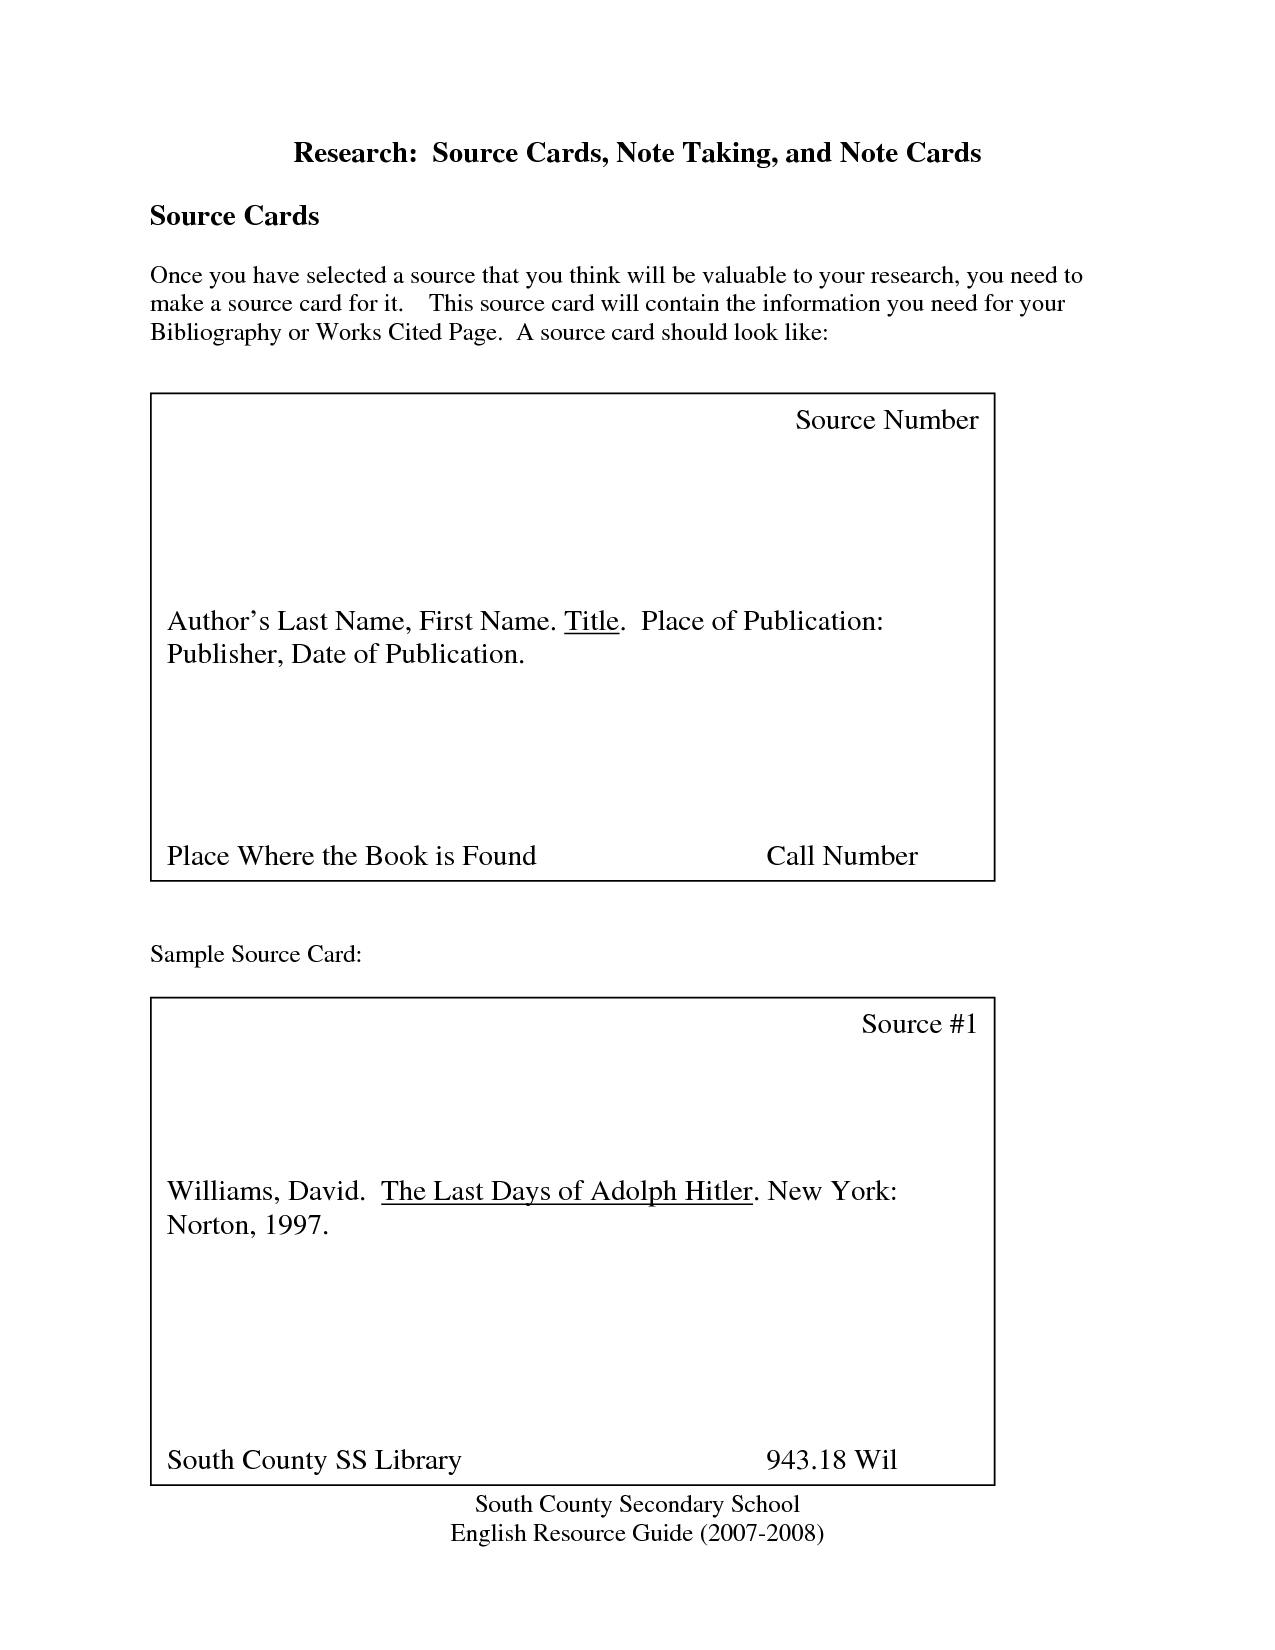 013 Research Paper Note Card Templates 442160 Cards Rare For Taking Papers System Example Of Notecards Full